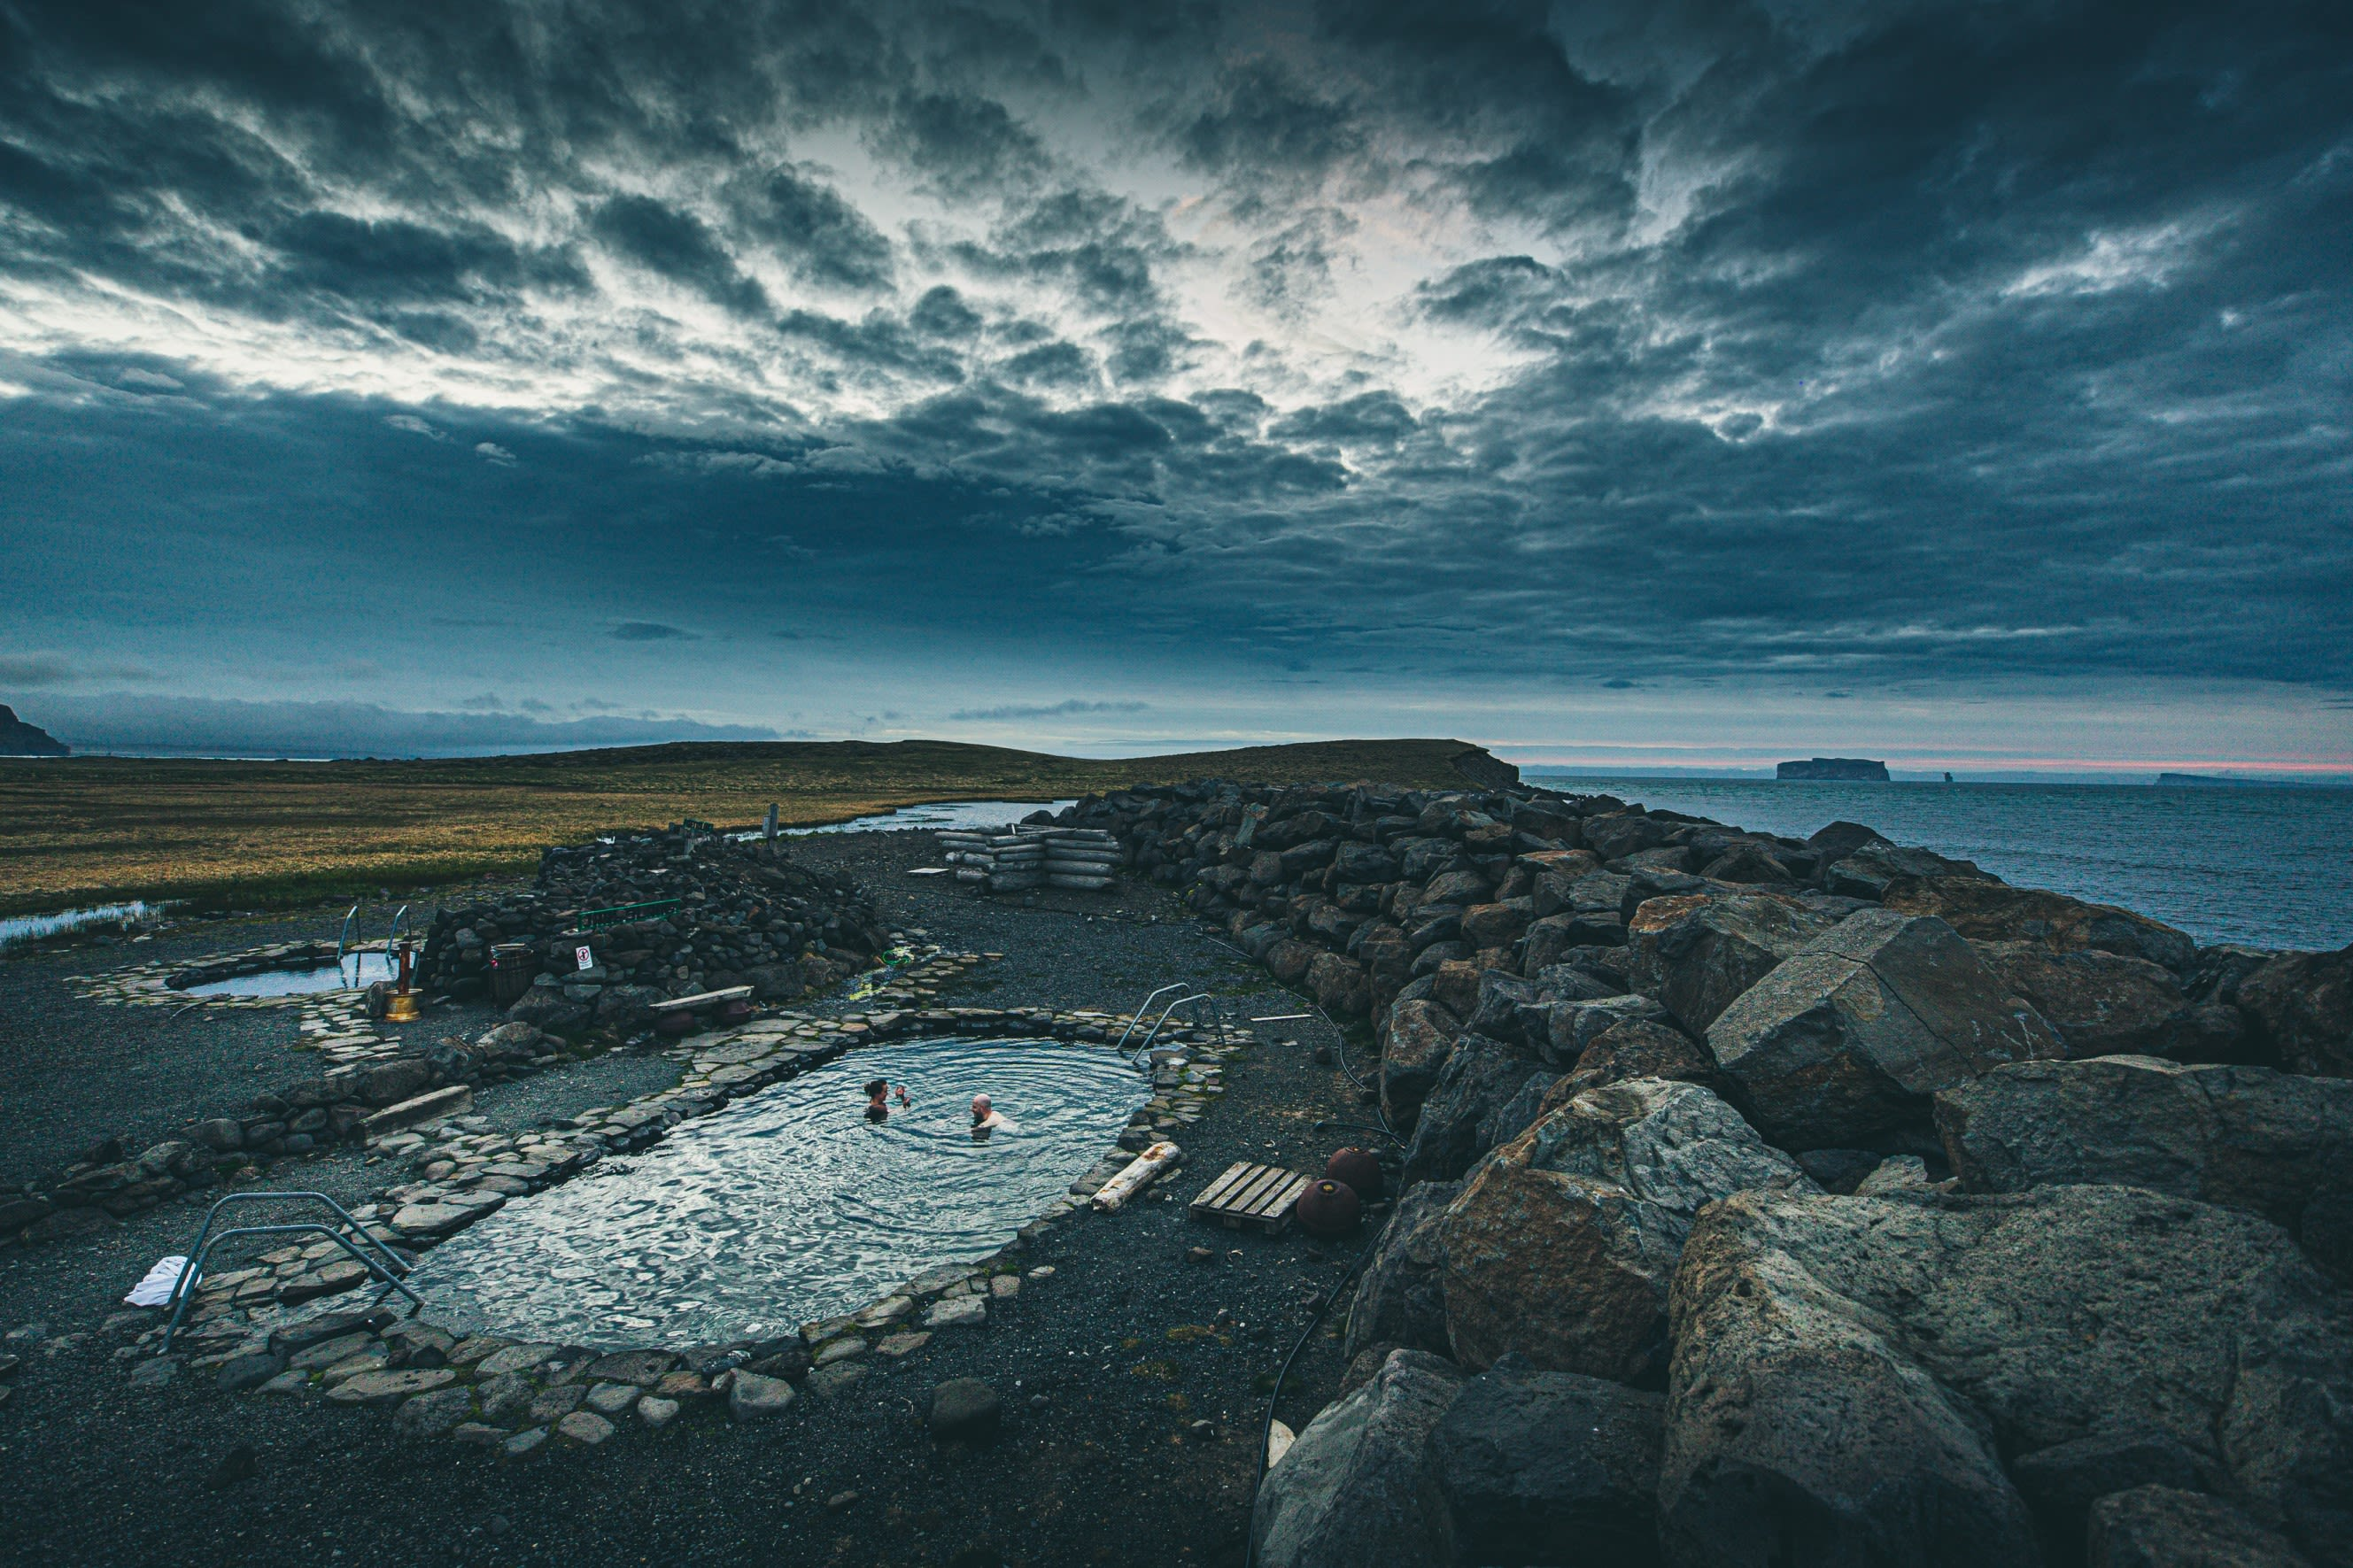 An elevated view of a small outdoor pool in Iceland with views out to sea